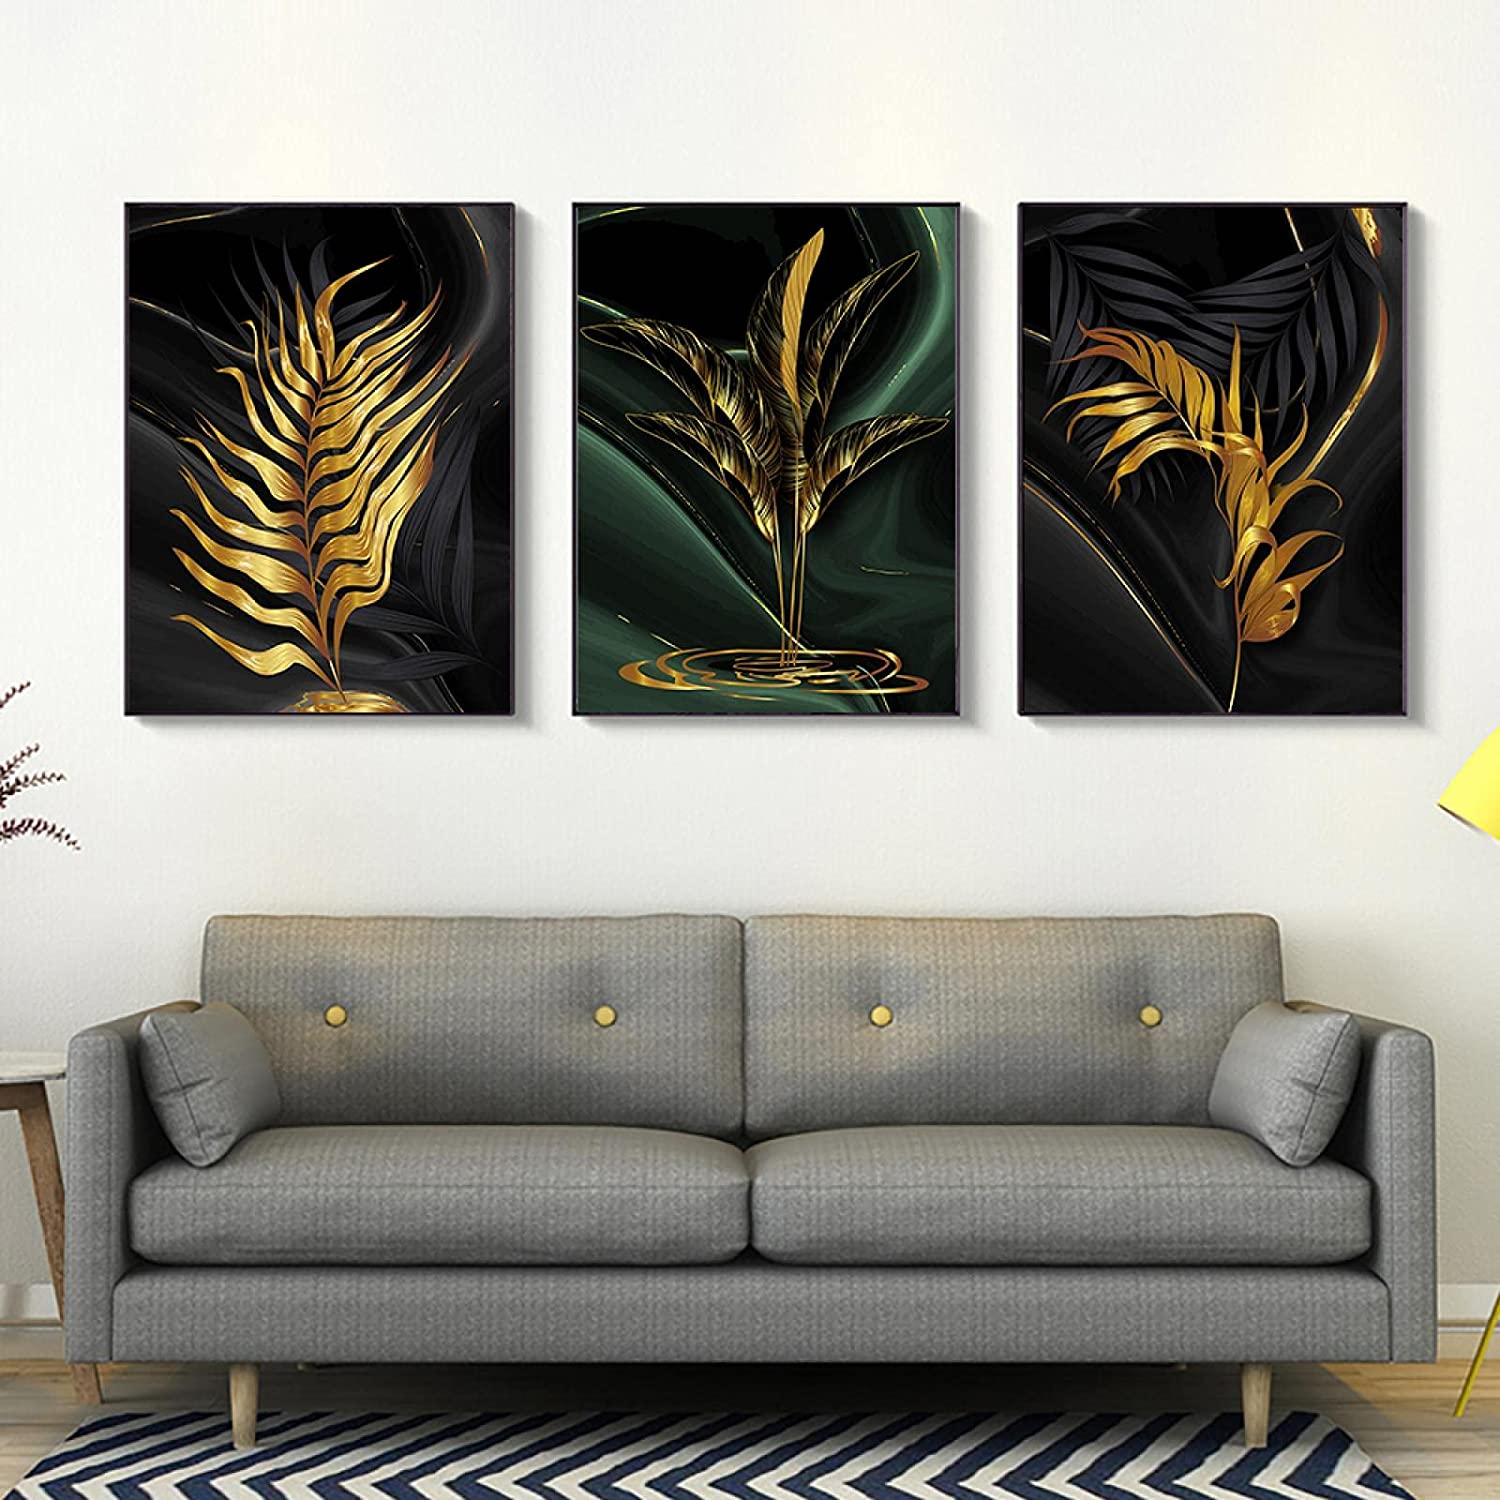 ZXWL Wall Art Poster Golden Over item handling Max 58% OFF ☆ Green Leave Decor Home Plant Nordic